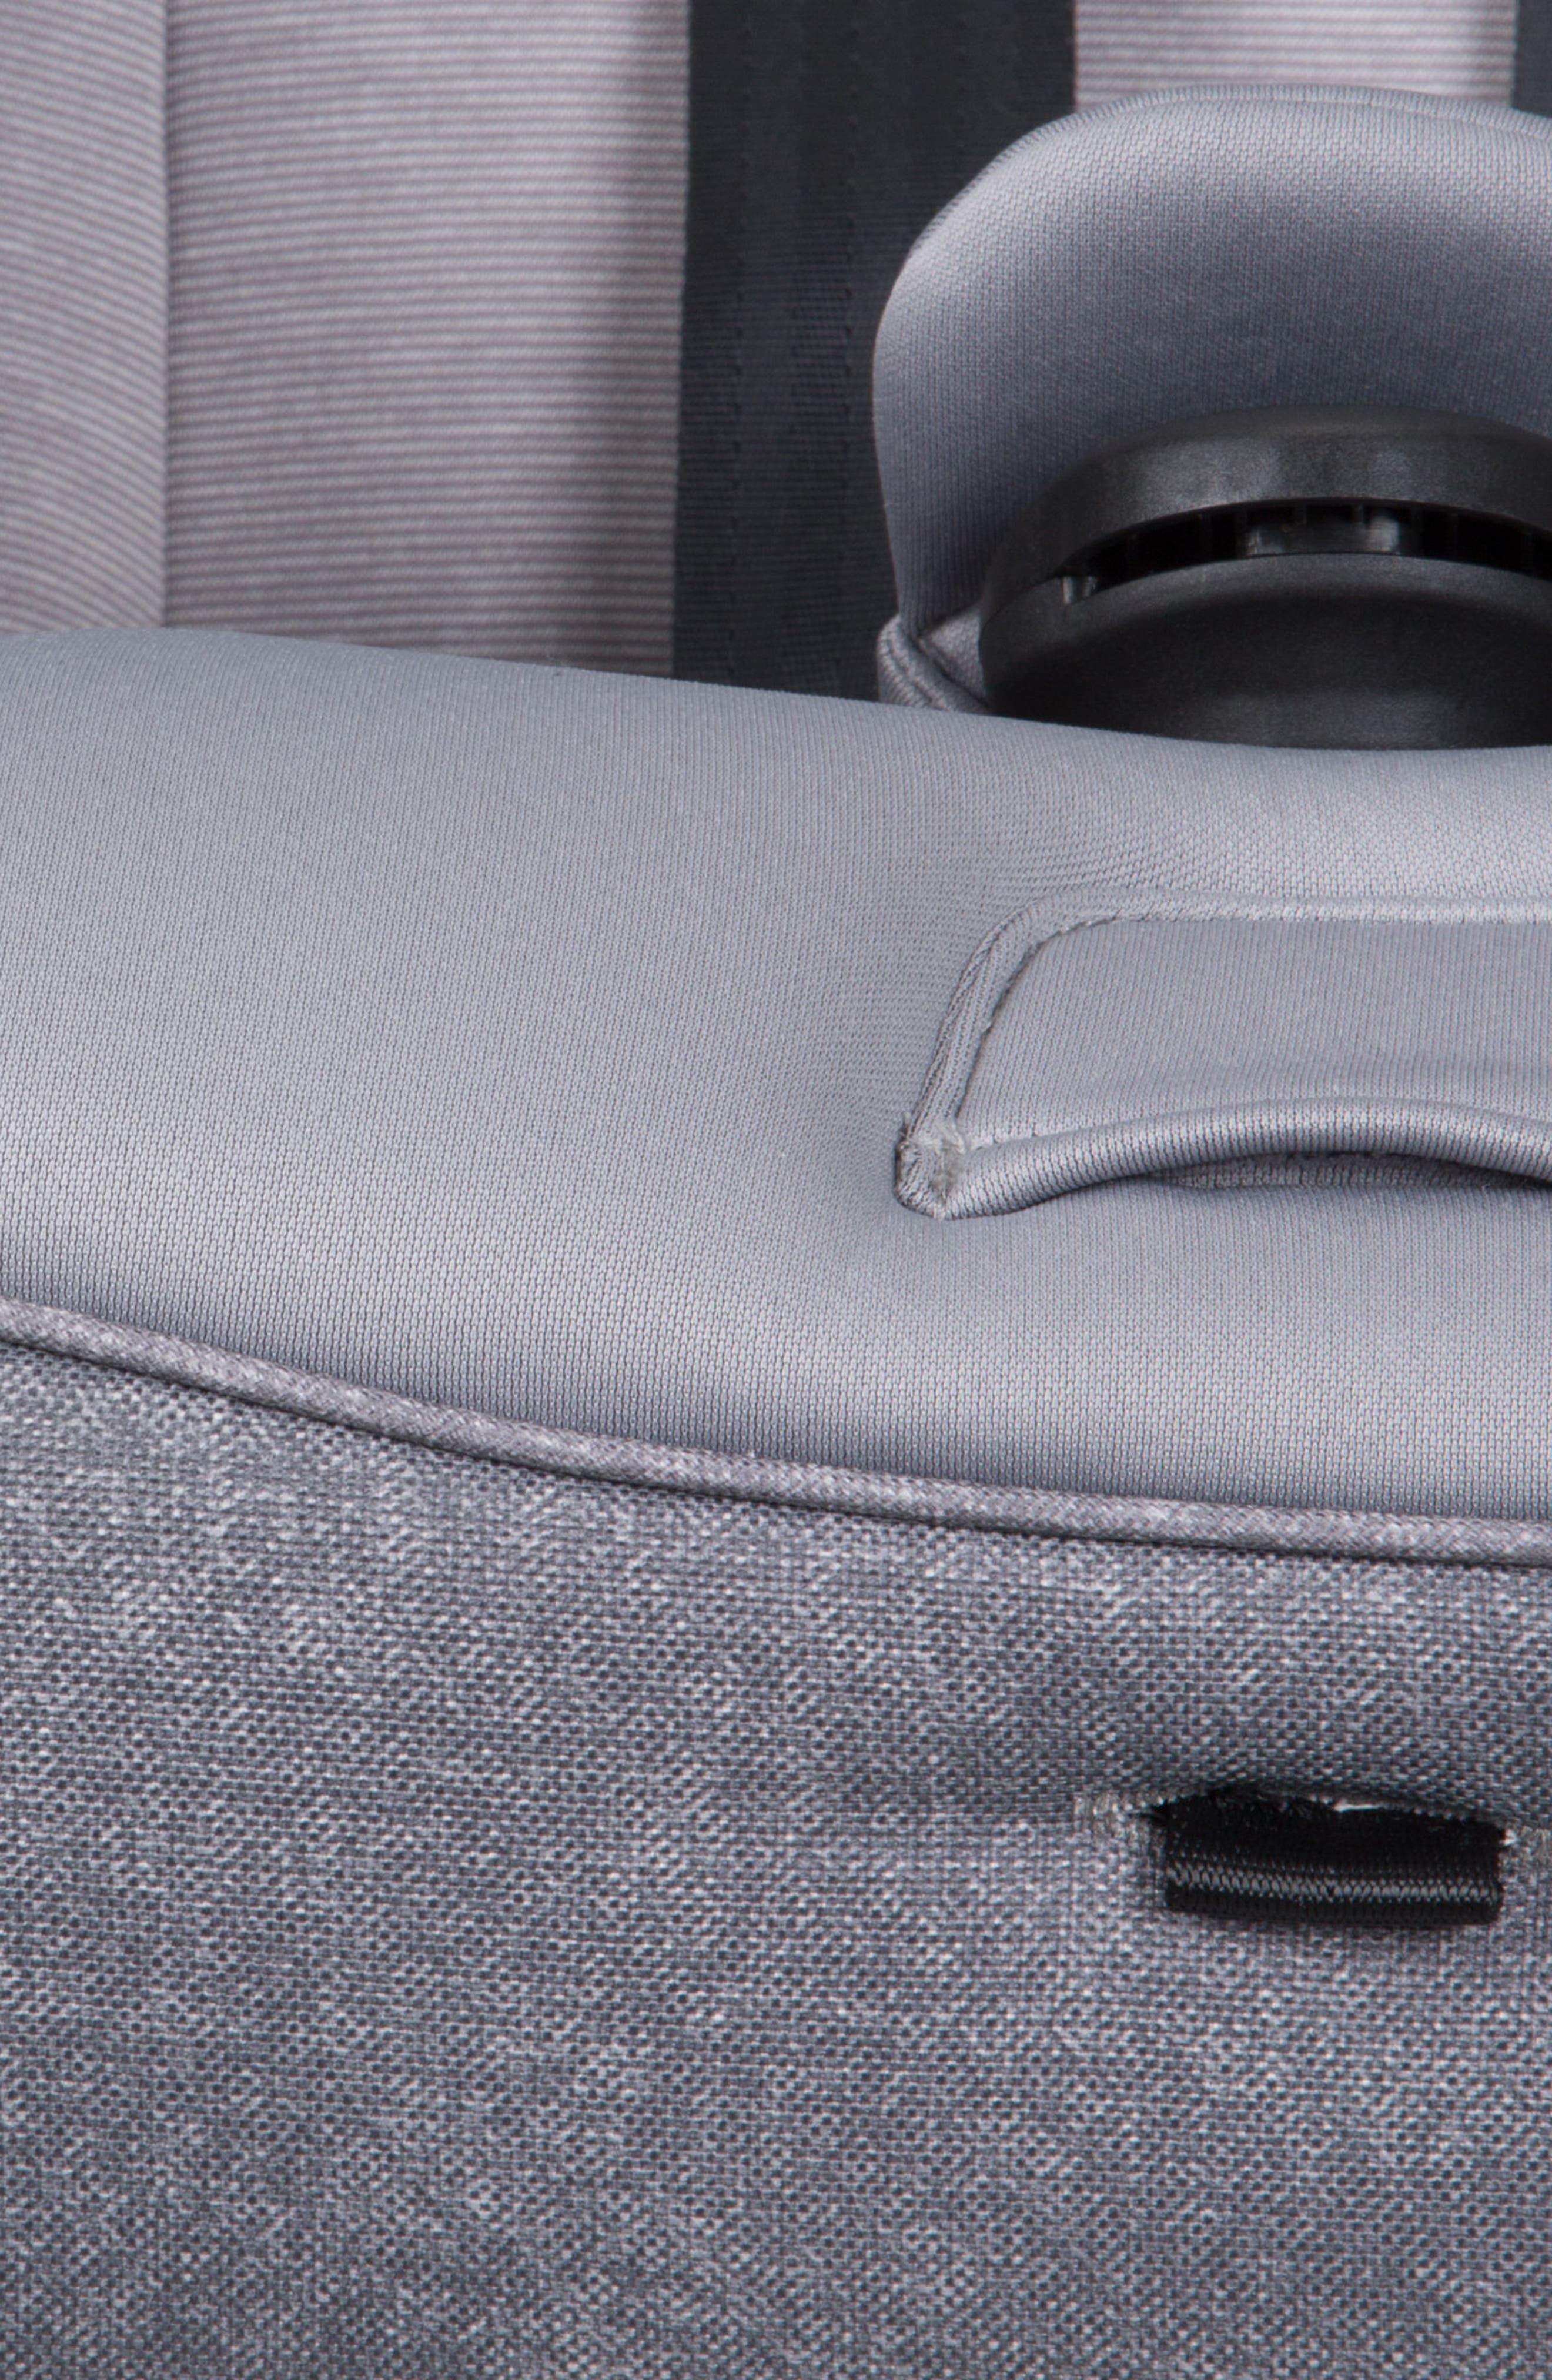 MAXI-COSI<SUP>®</SUP>,                             Pria<sup>™</sup> 85 Max Nomad Collection Convertible Car Seat,                             Alternate thumbnail 10, color,                             NOMAD GREY